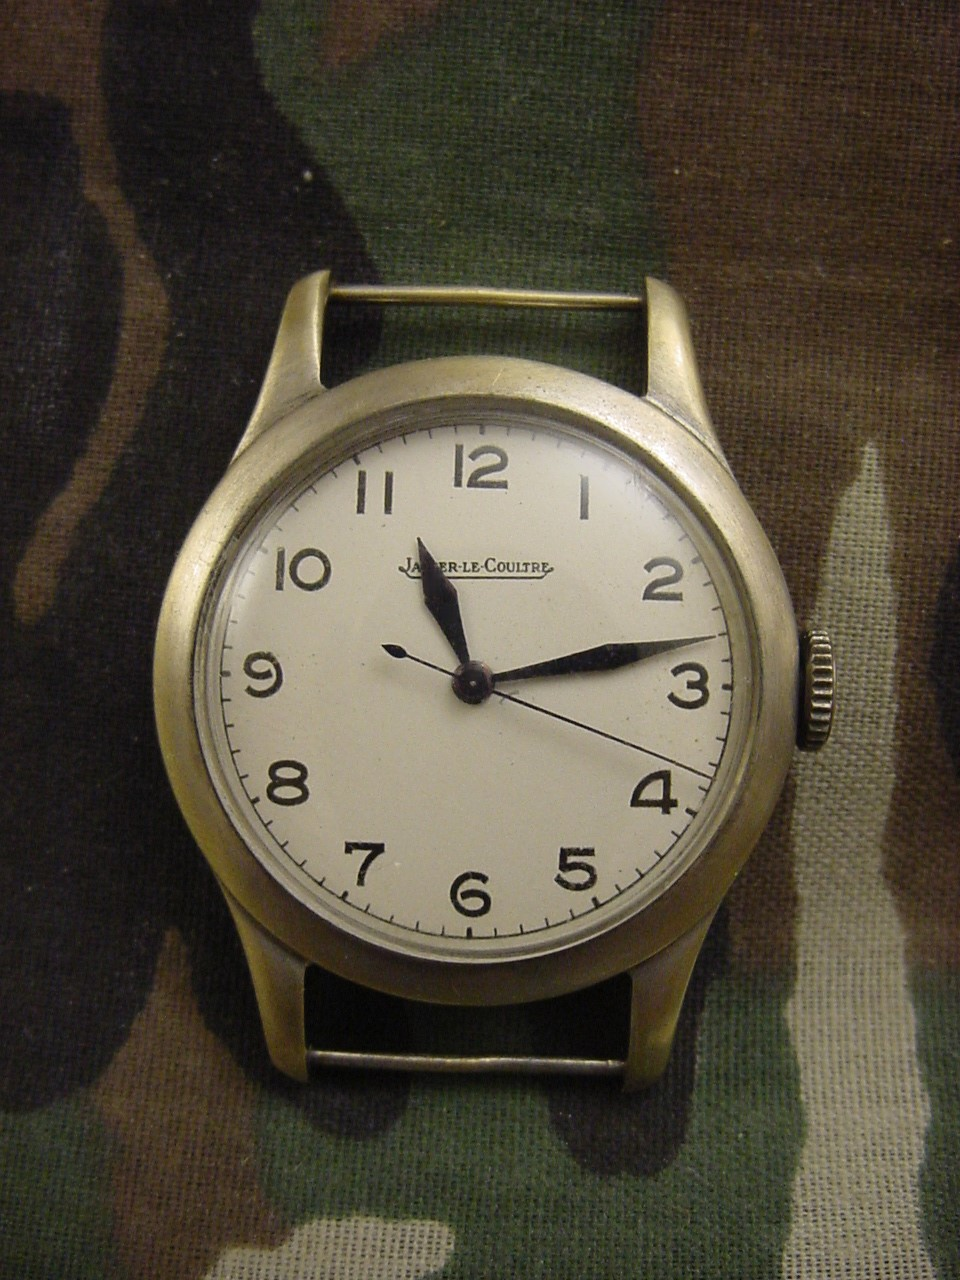 The Hack Watch -- Military Watches for Sale